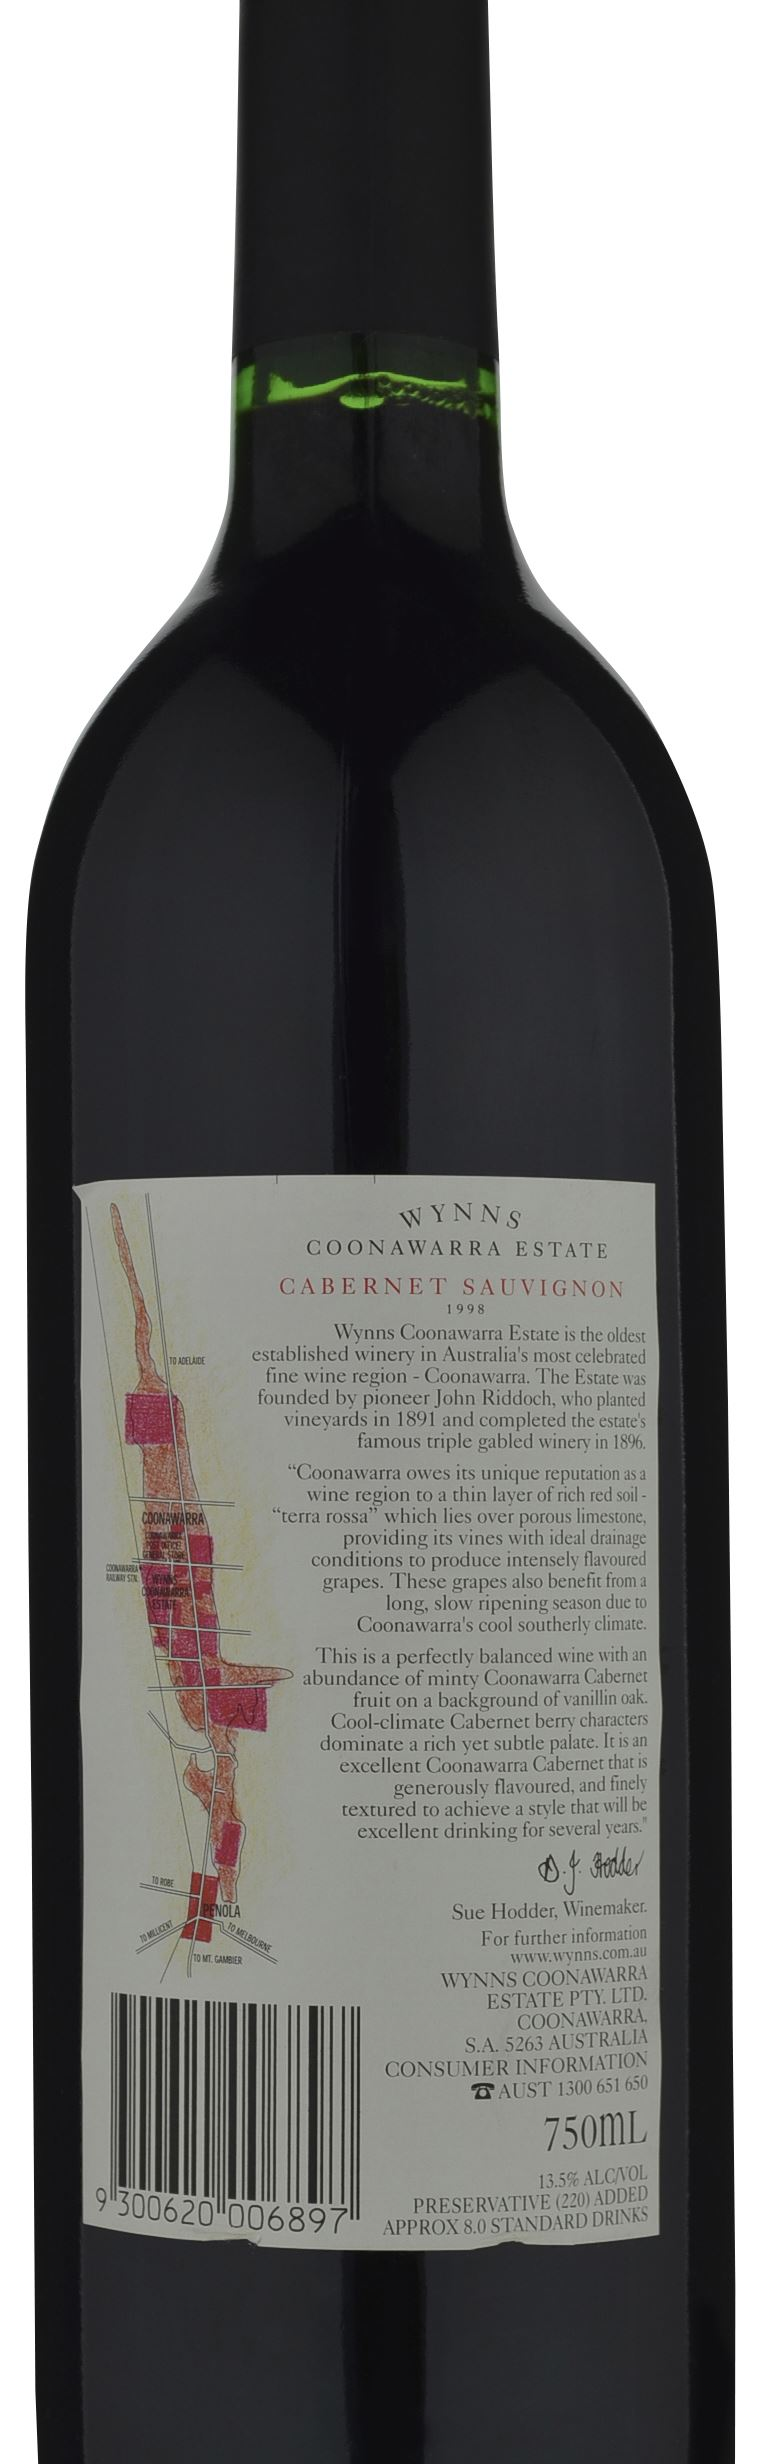 It's just an image of Old Fashioned Wynns Coonawarra Estate Black Label Cabernet Sauvignon